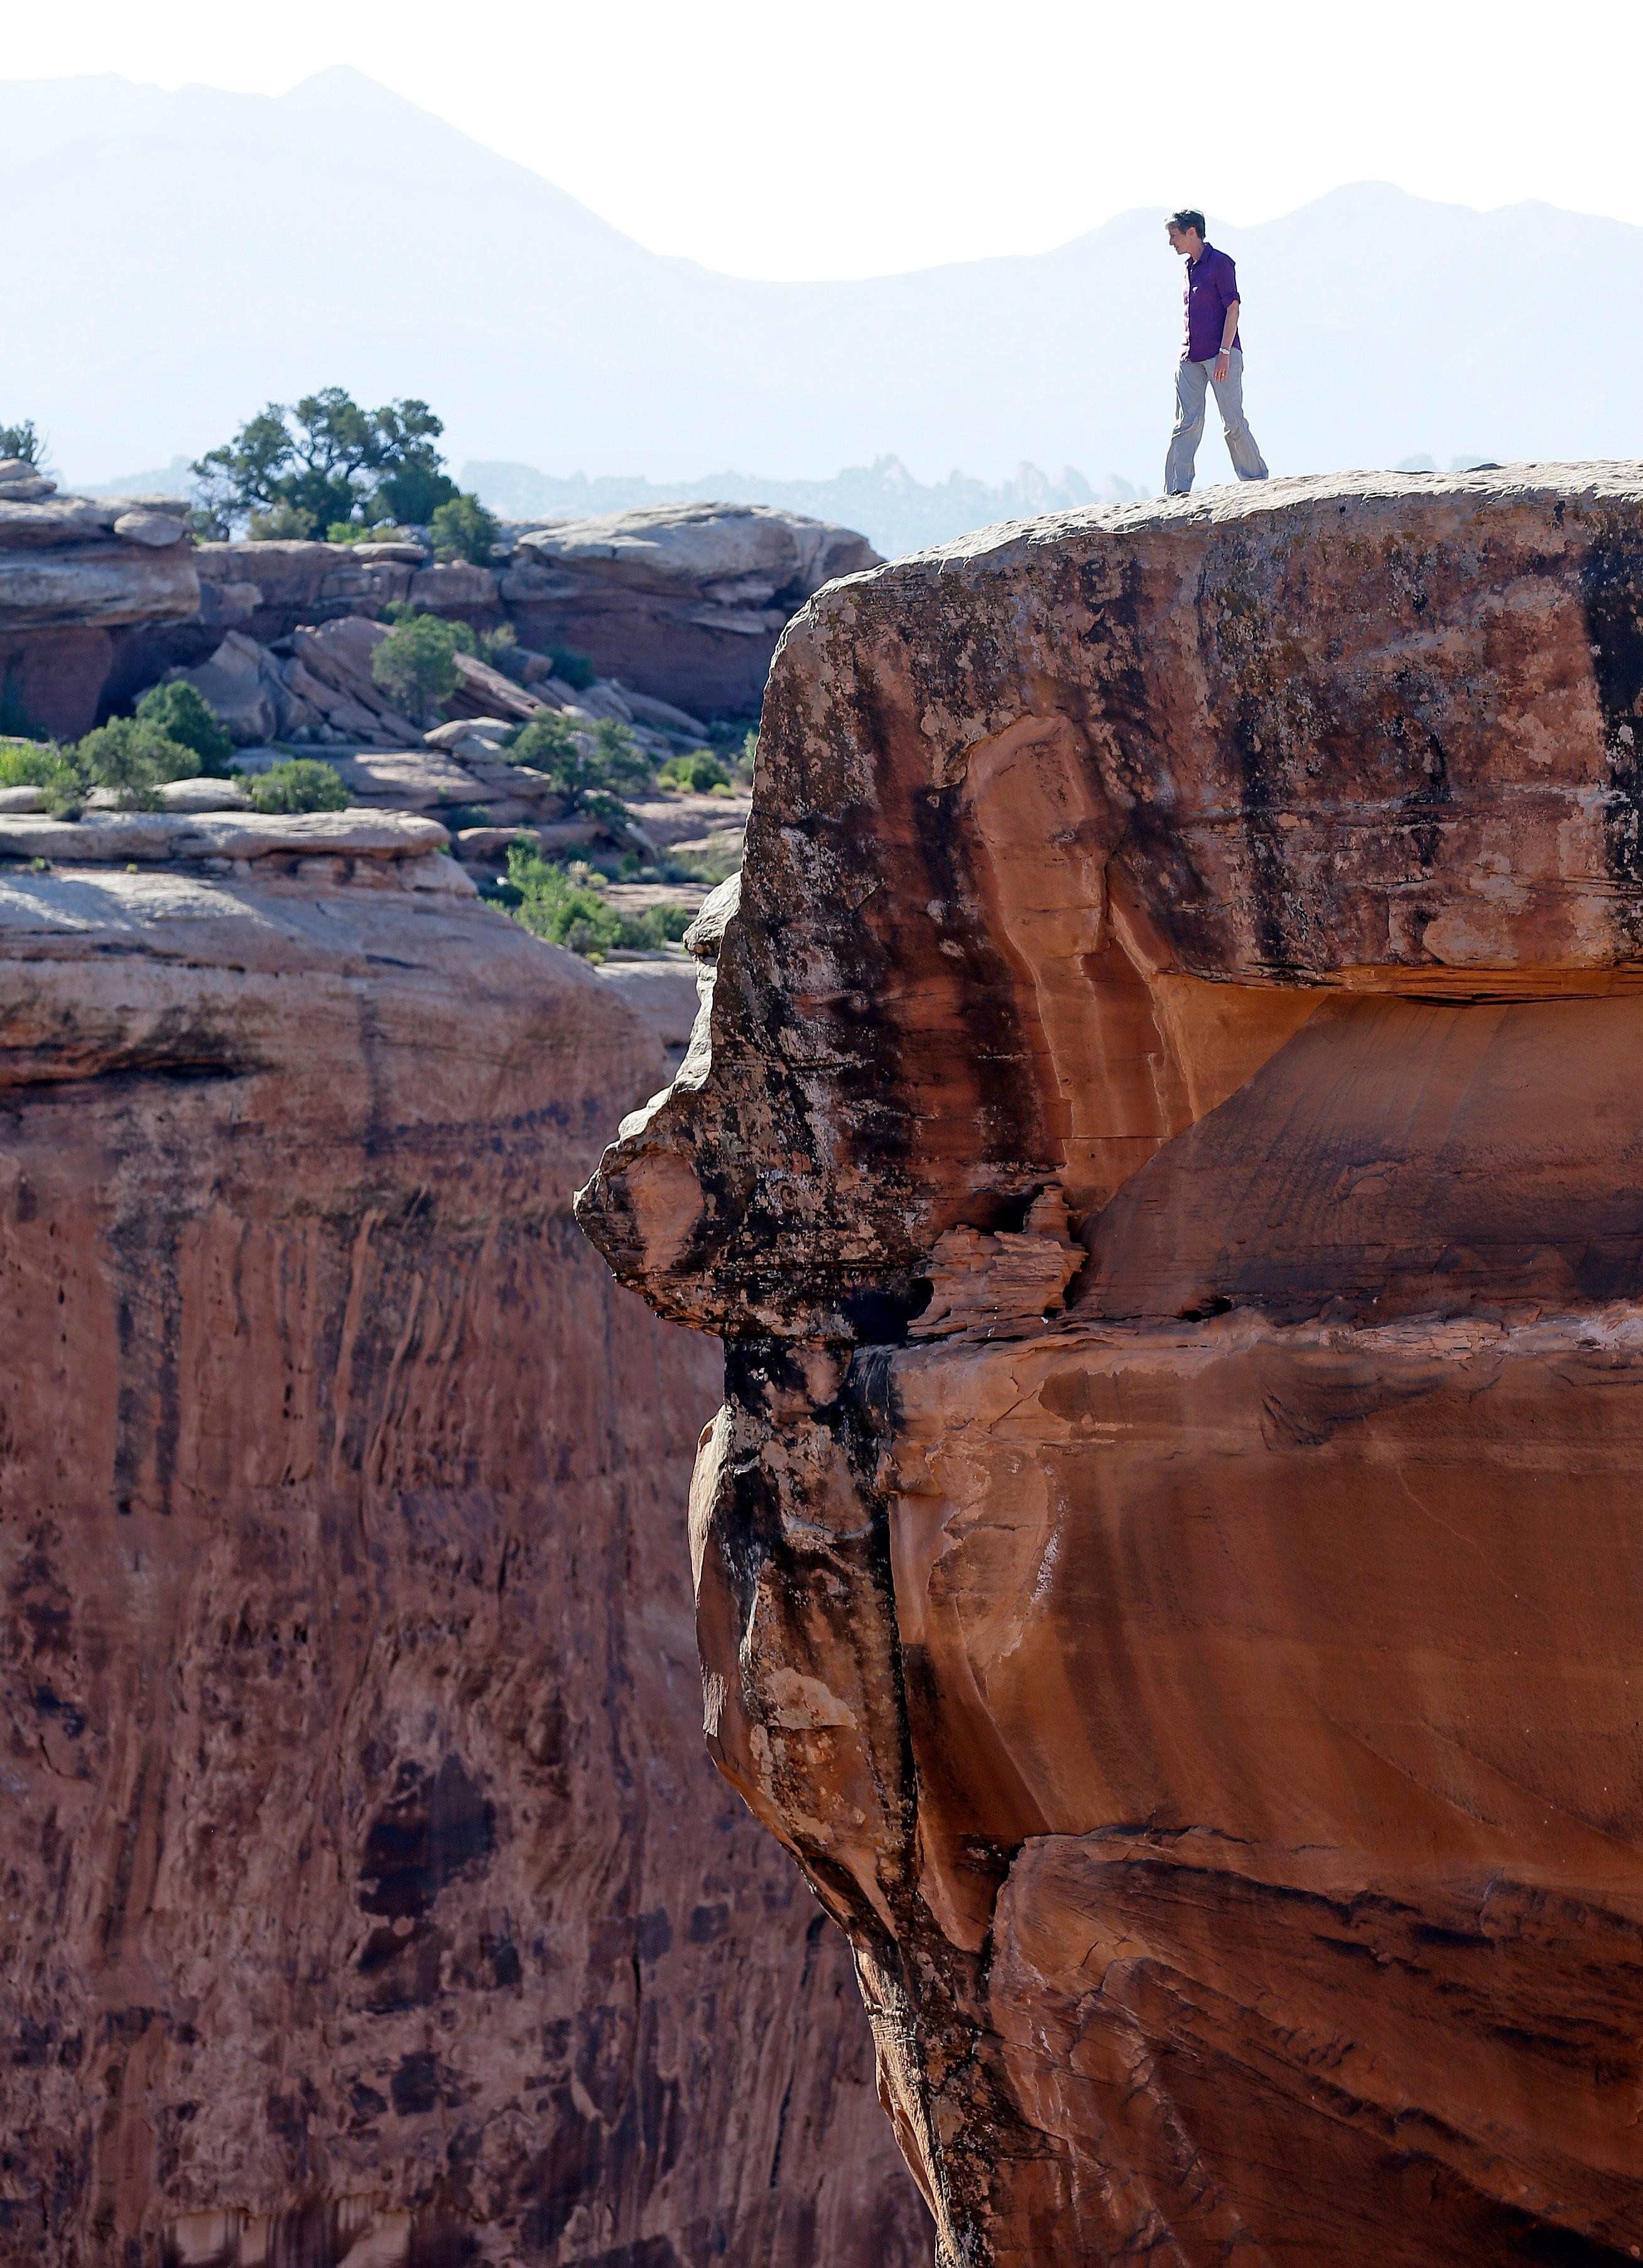 "FILE - In this July 14, 2016 file photo, then-Interior Secretary Sally Jewell looks in to a canyon at Gemini Bridges near Moab, Utah, during a tour to meet with proponents and opponents to the ""Bears Ears"" monument proposal. Interior Secretary Ryan Zinke is recommending that the new Bears Ears National Monument in Utah be reduced in size and says Congress should step in to designate how selected areas of the 1.3 million-acre site are categorized. (AP Photo/Rick Bowmer, File)   Interior Secretary Ryan Zinke is recommending that the new Bears Ears National Monument in Utah be reduced in size and says Congress should step in to designate how selected areas of the 1.3 million-acre site are categorized."